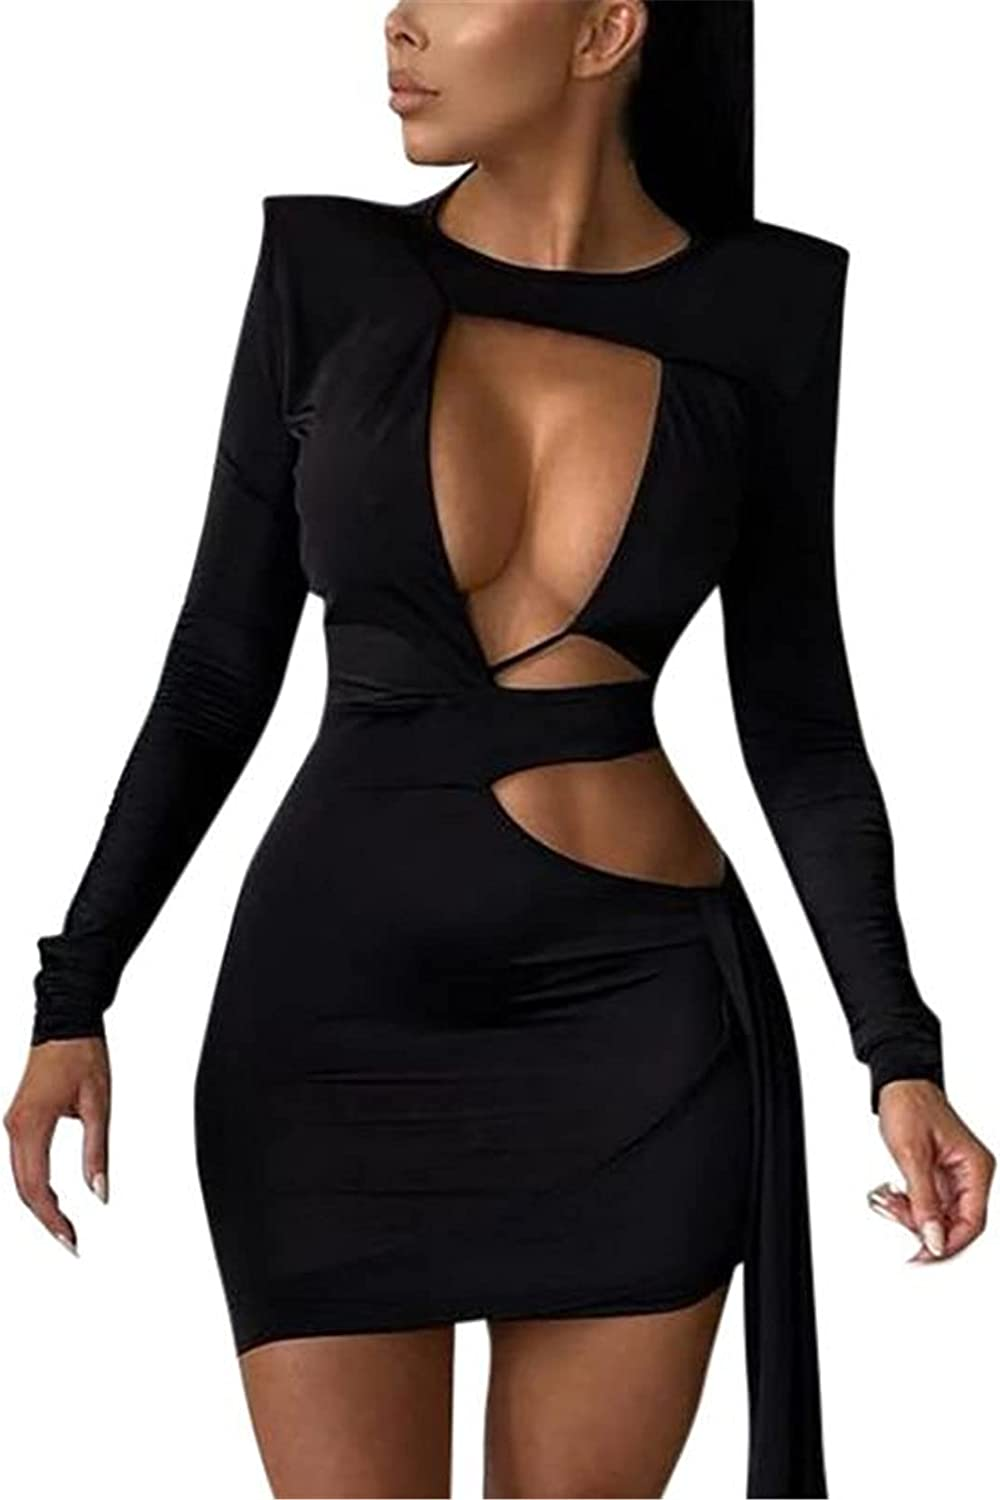 BUOCENISY Women Hollowed Dresses Bodycon Cutout Long Sleeve Tie-up Tunic Dress Club Party Dressy One-Piece